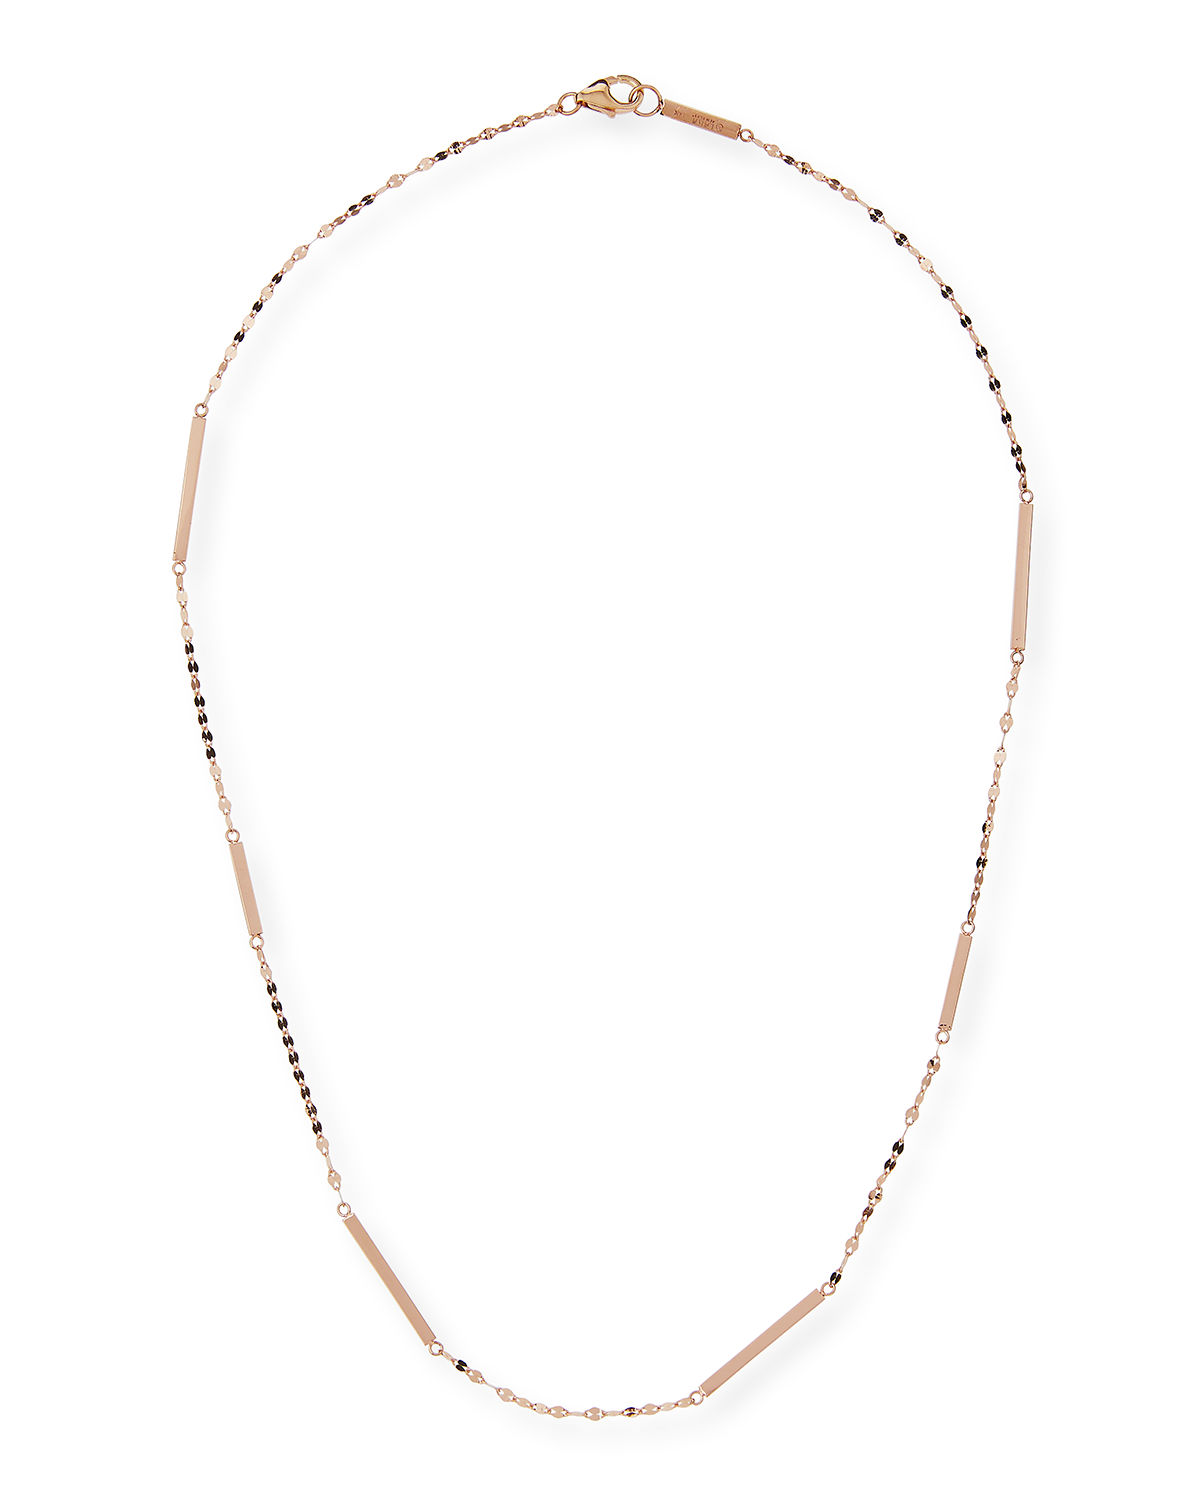 Lana Accessories 14K GOLD SHORT BAR STATION NECKLACE